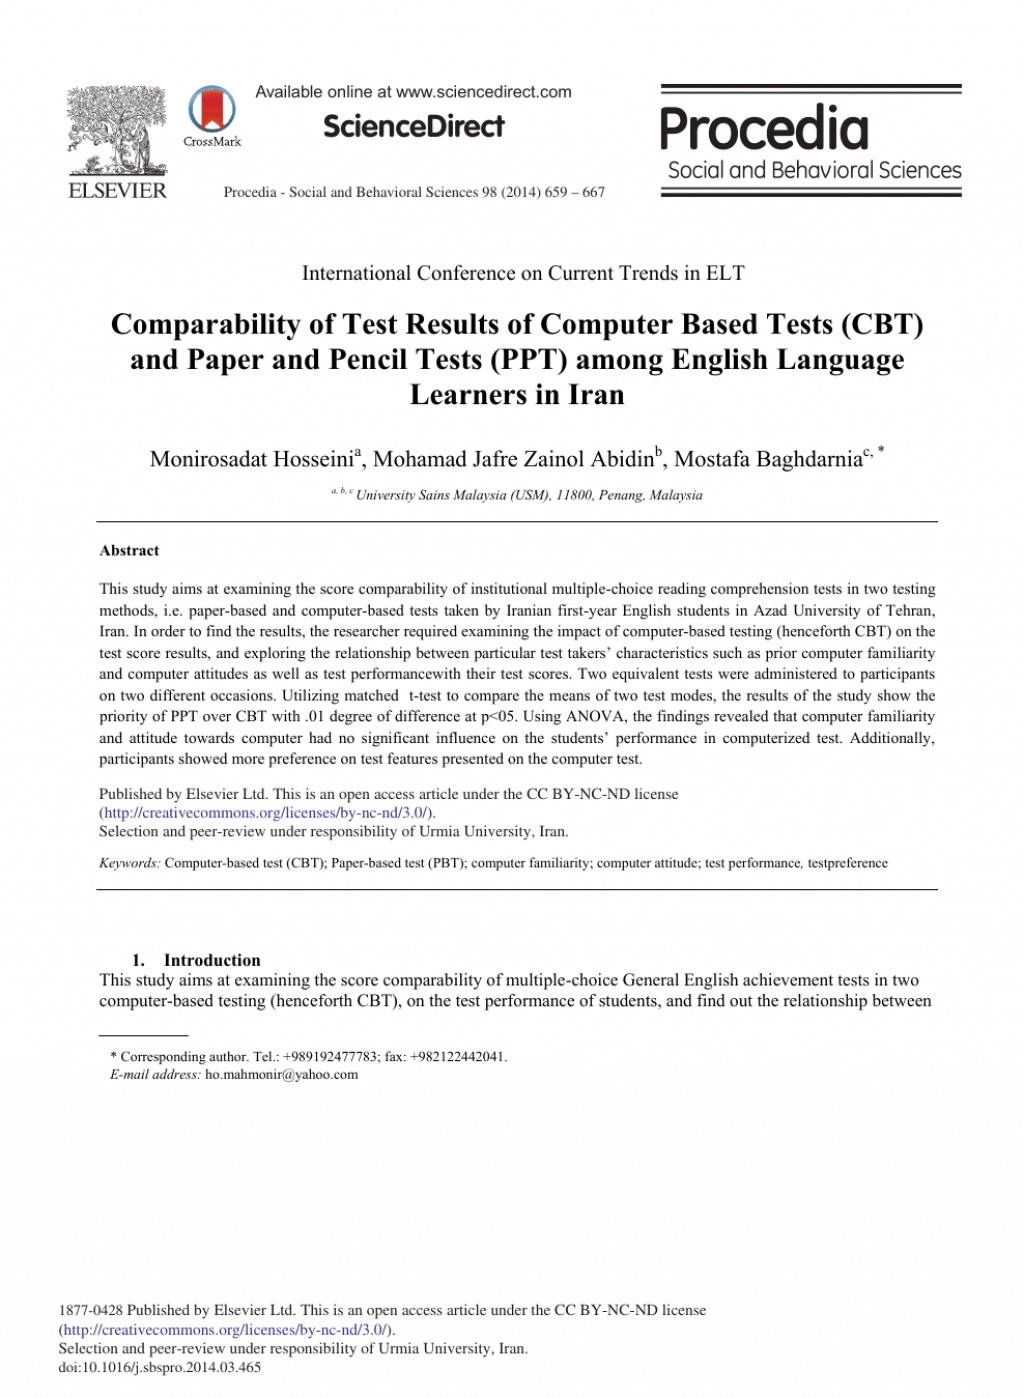 008 Research Paper How To Read Papers Ppt Fascinating Large